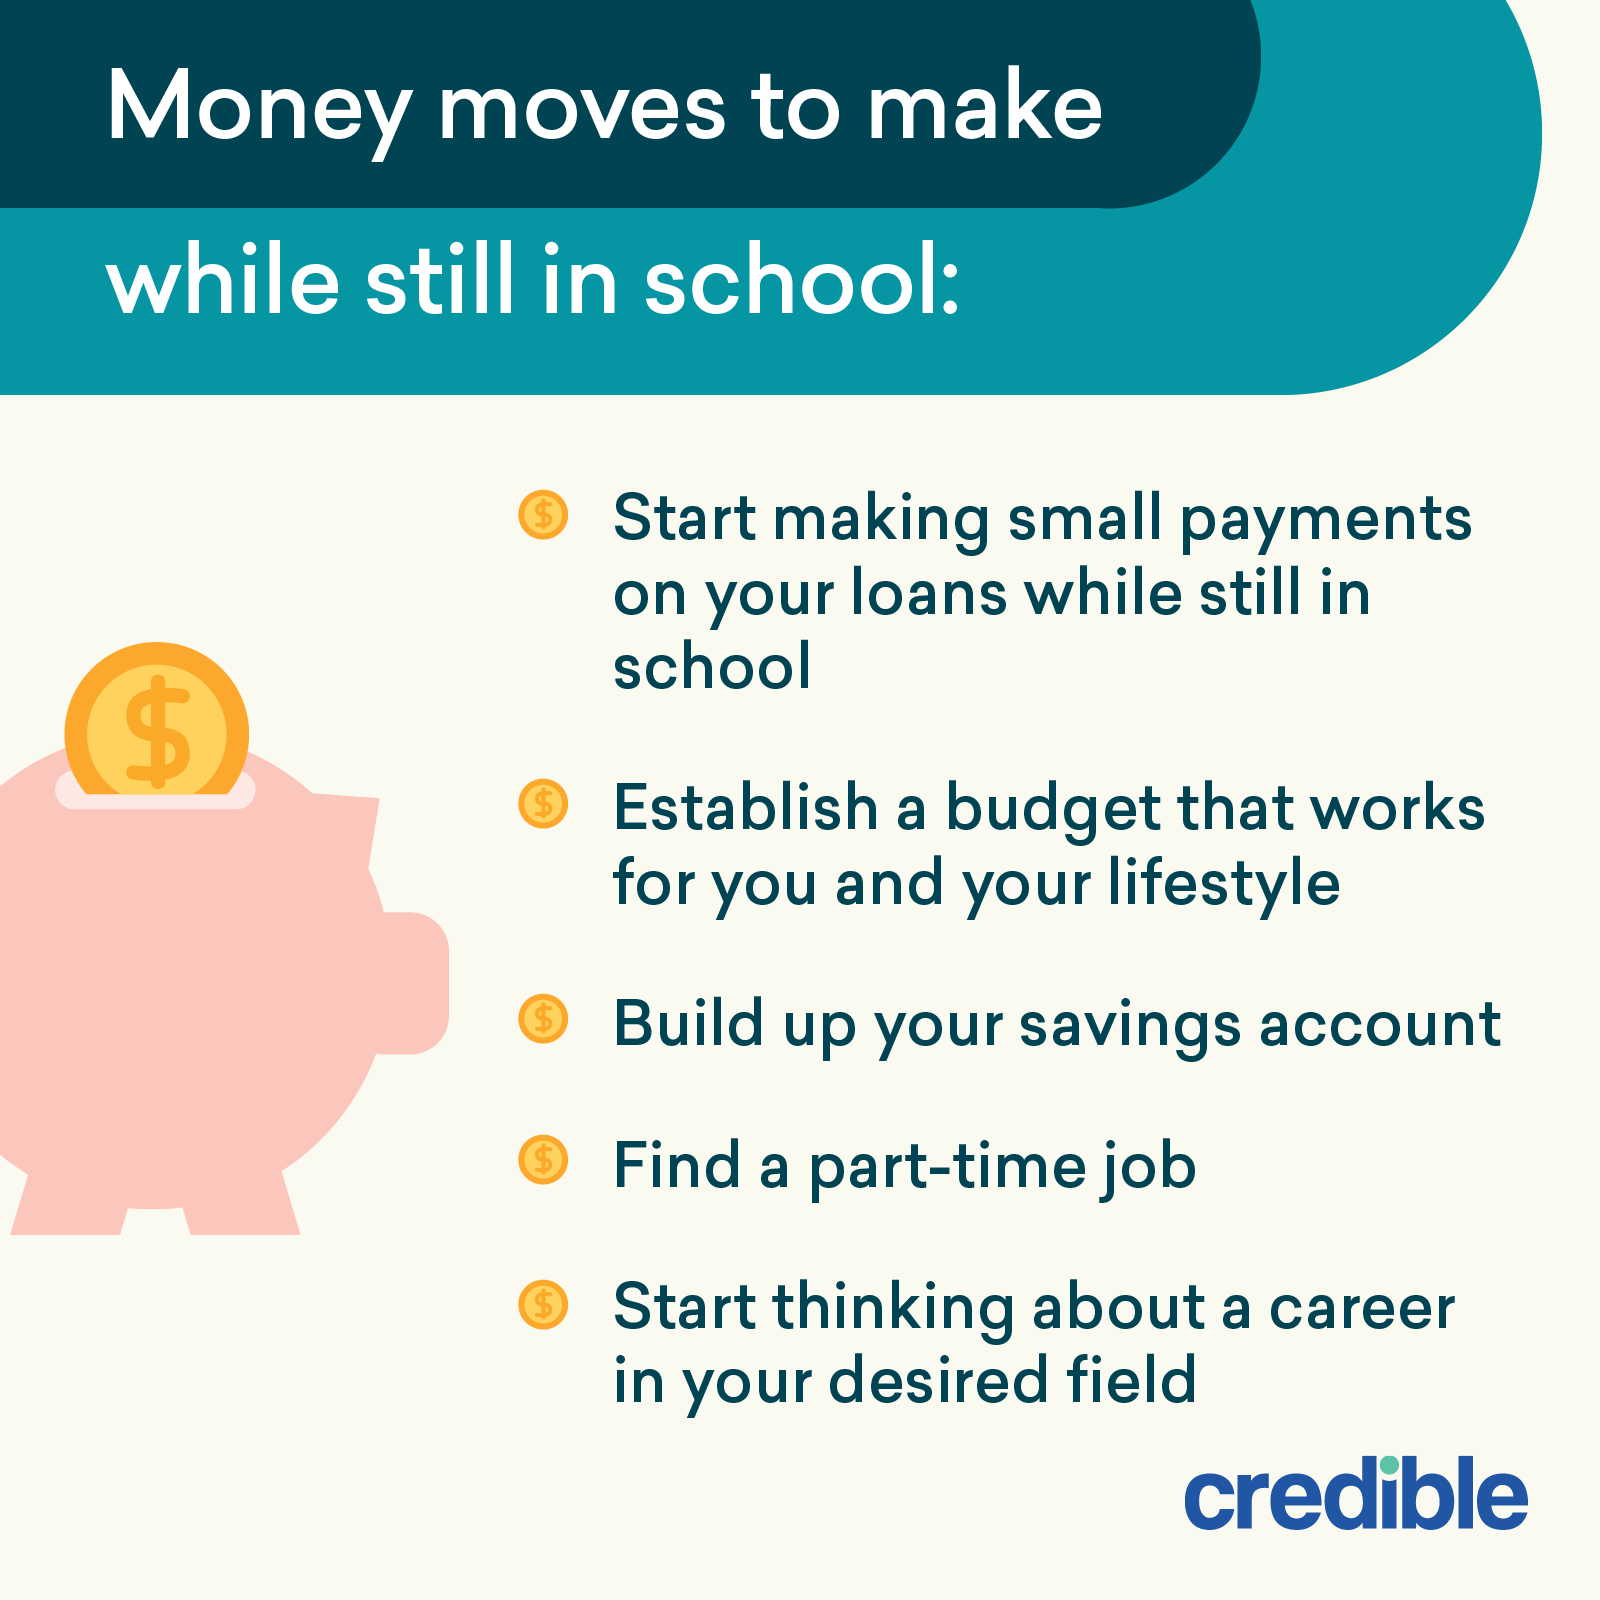 money moves to make while still in school